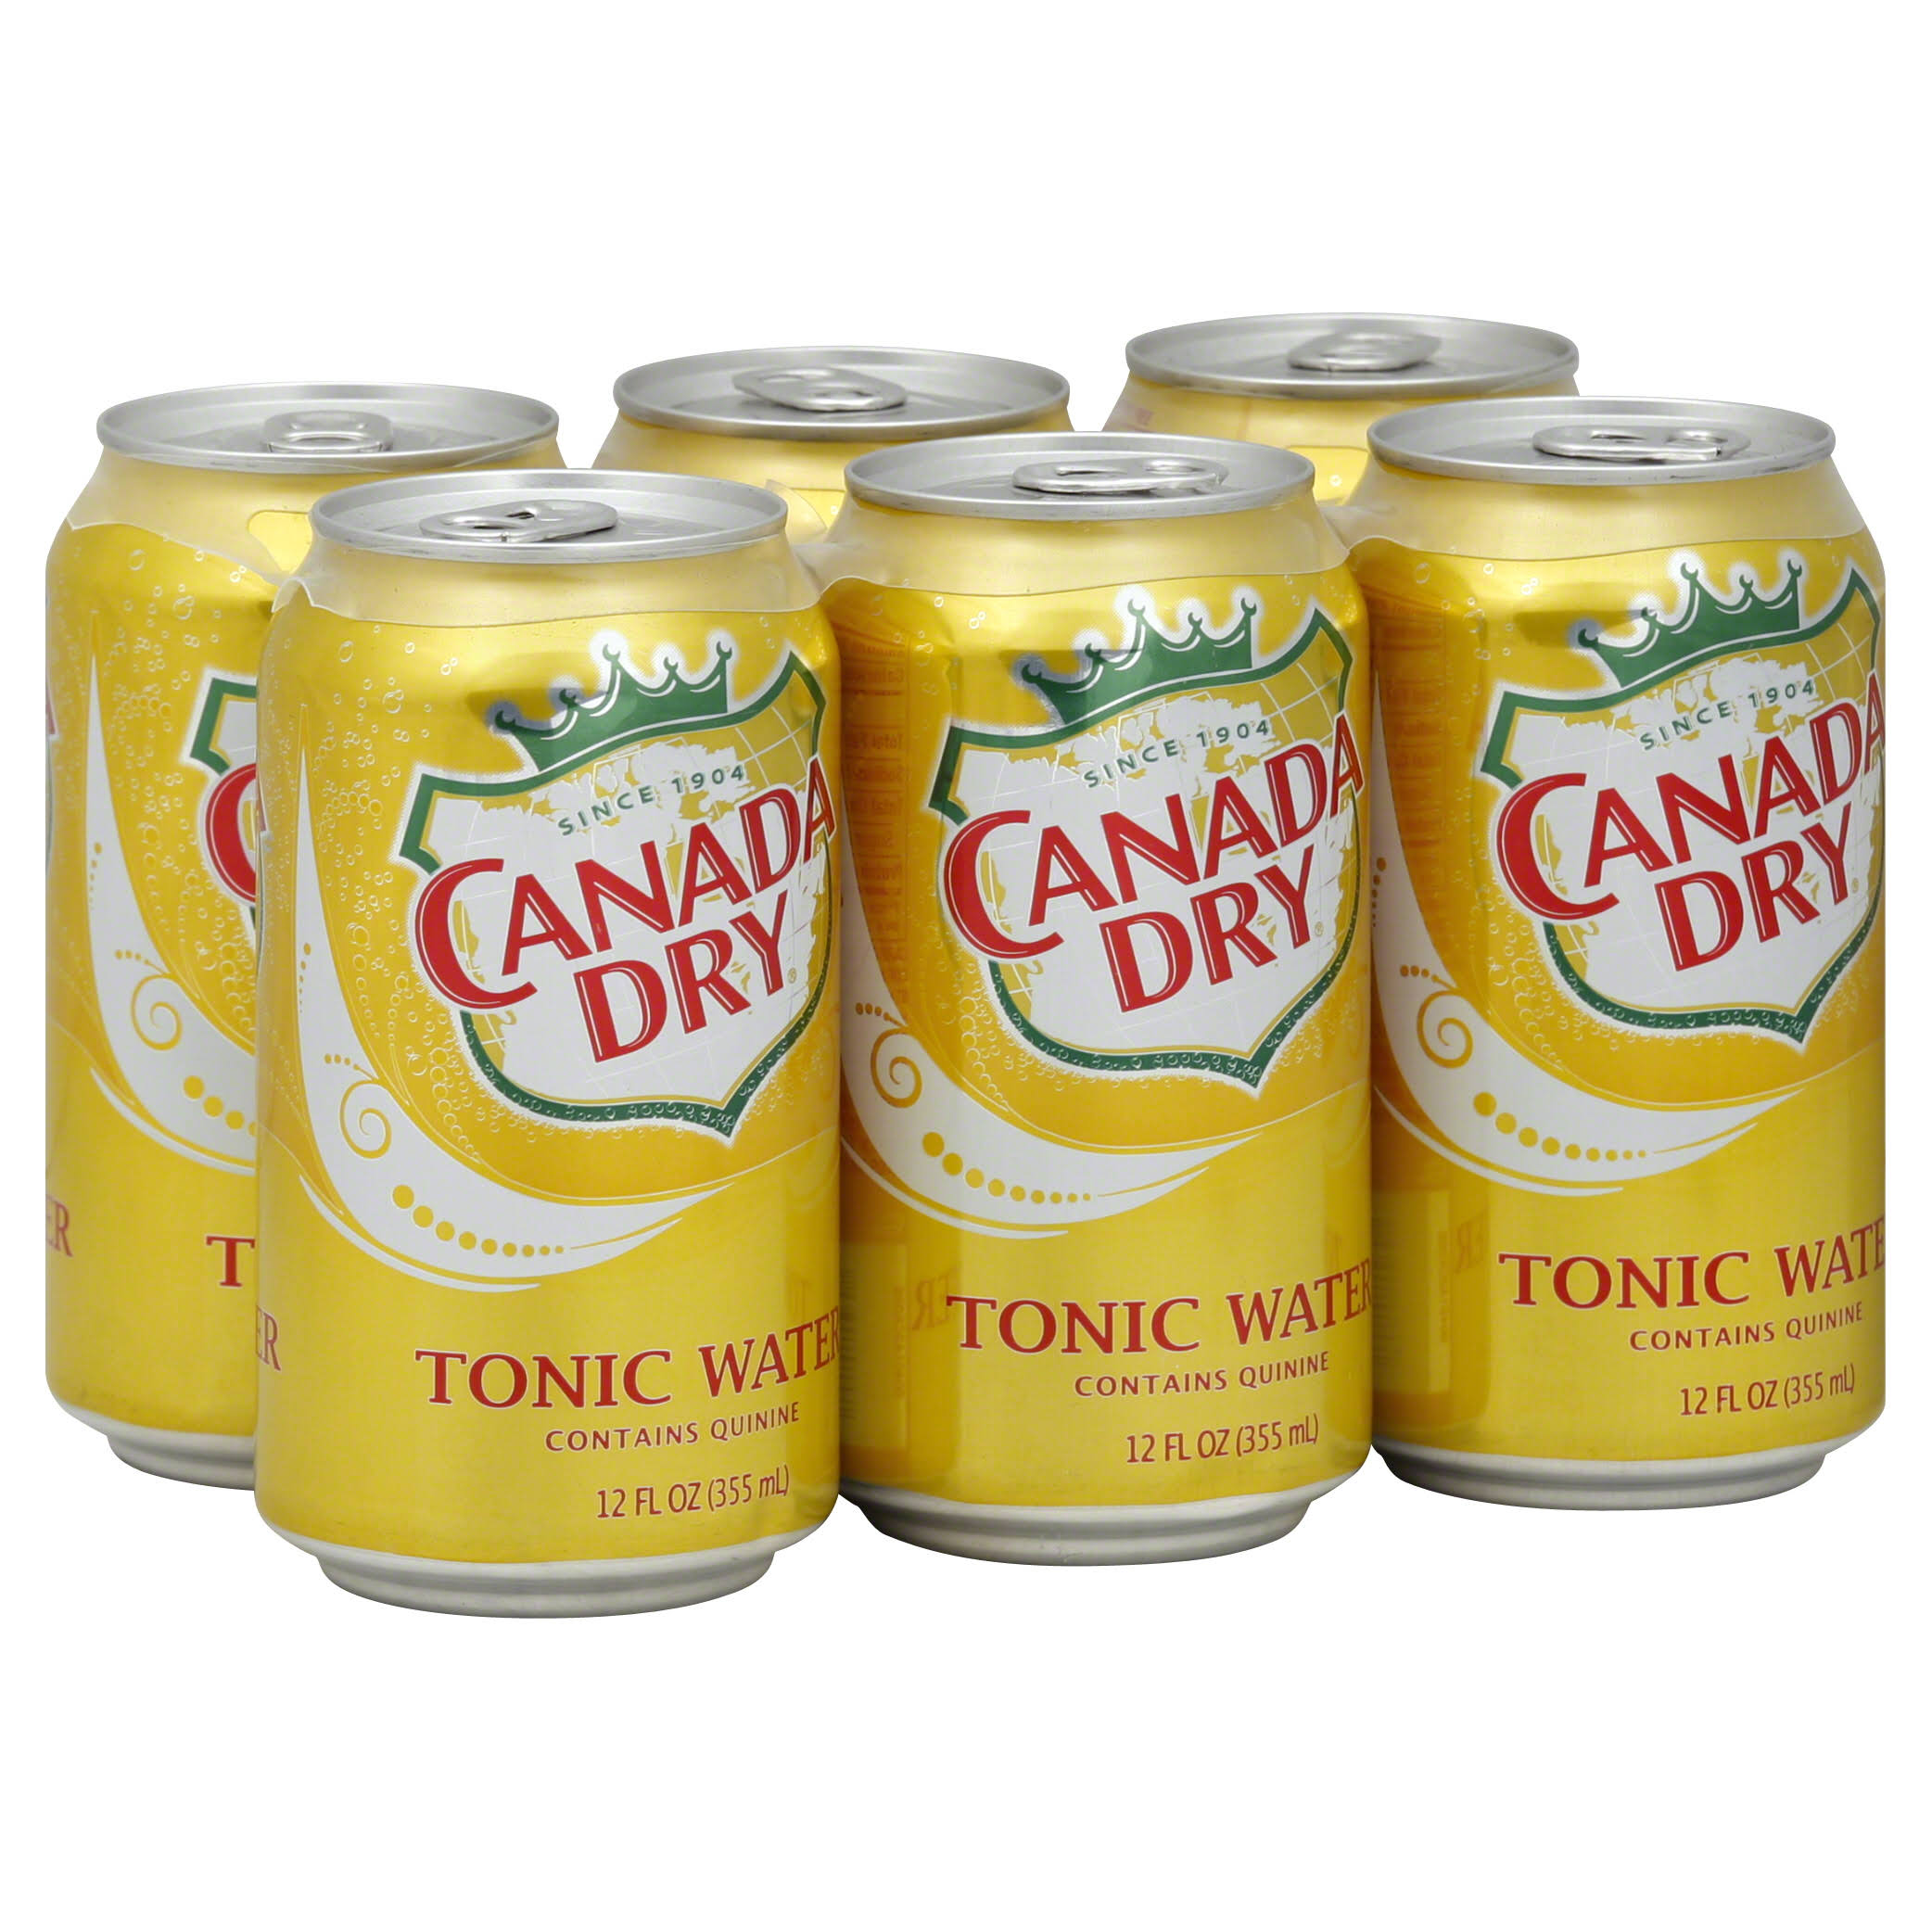 Canada Dry Tonic Water - 12oz, 6pk